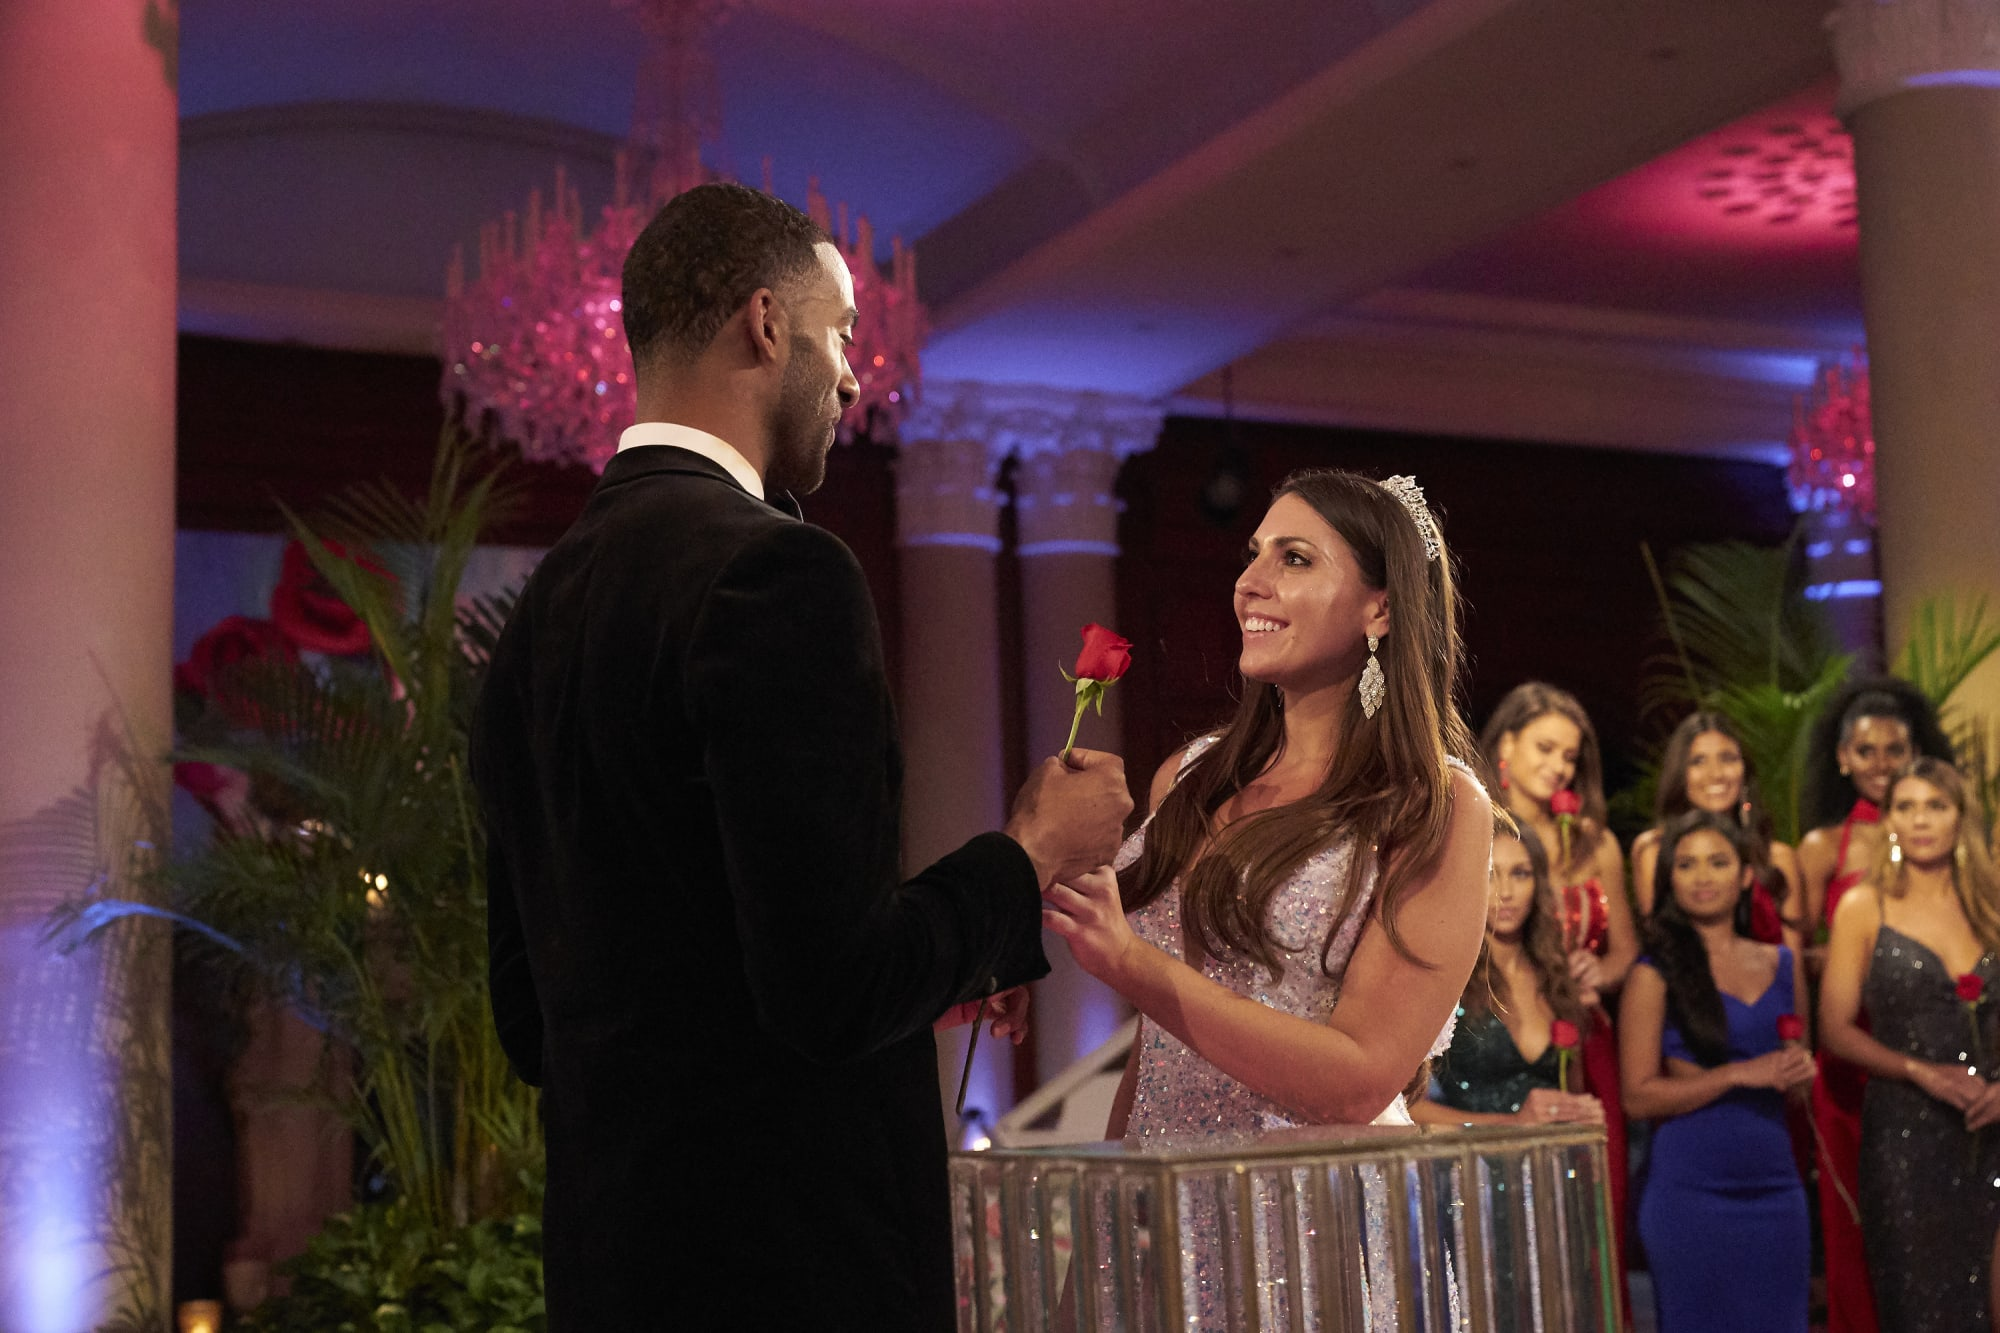 Is Victoria from The Bachelor an actress?